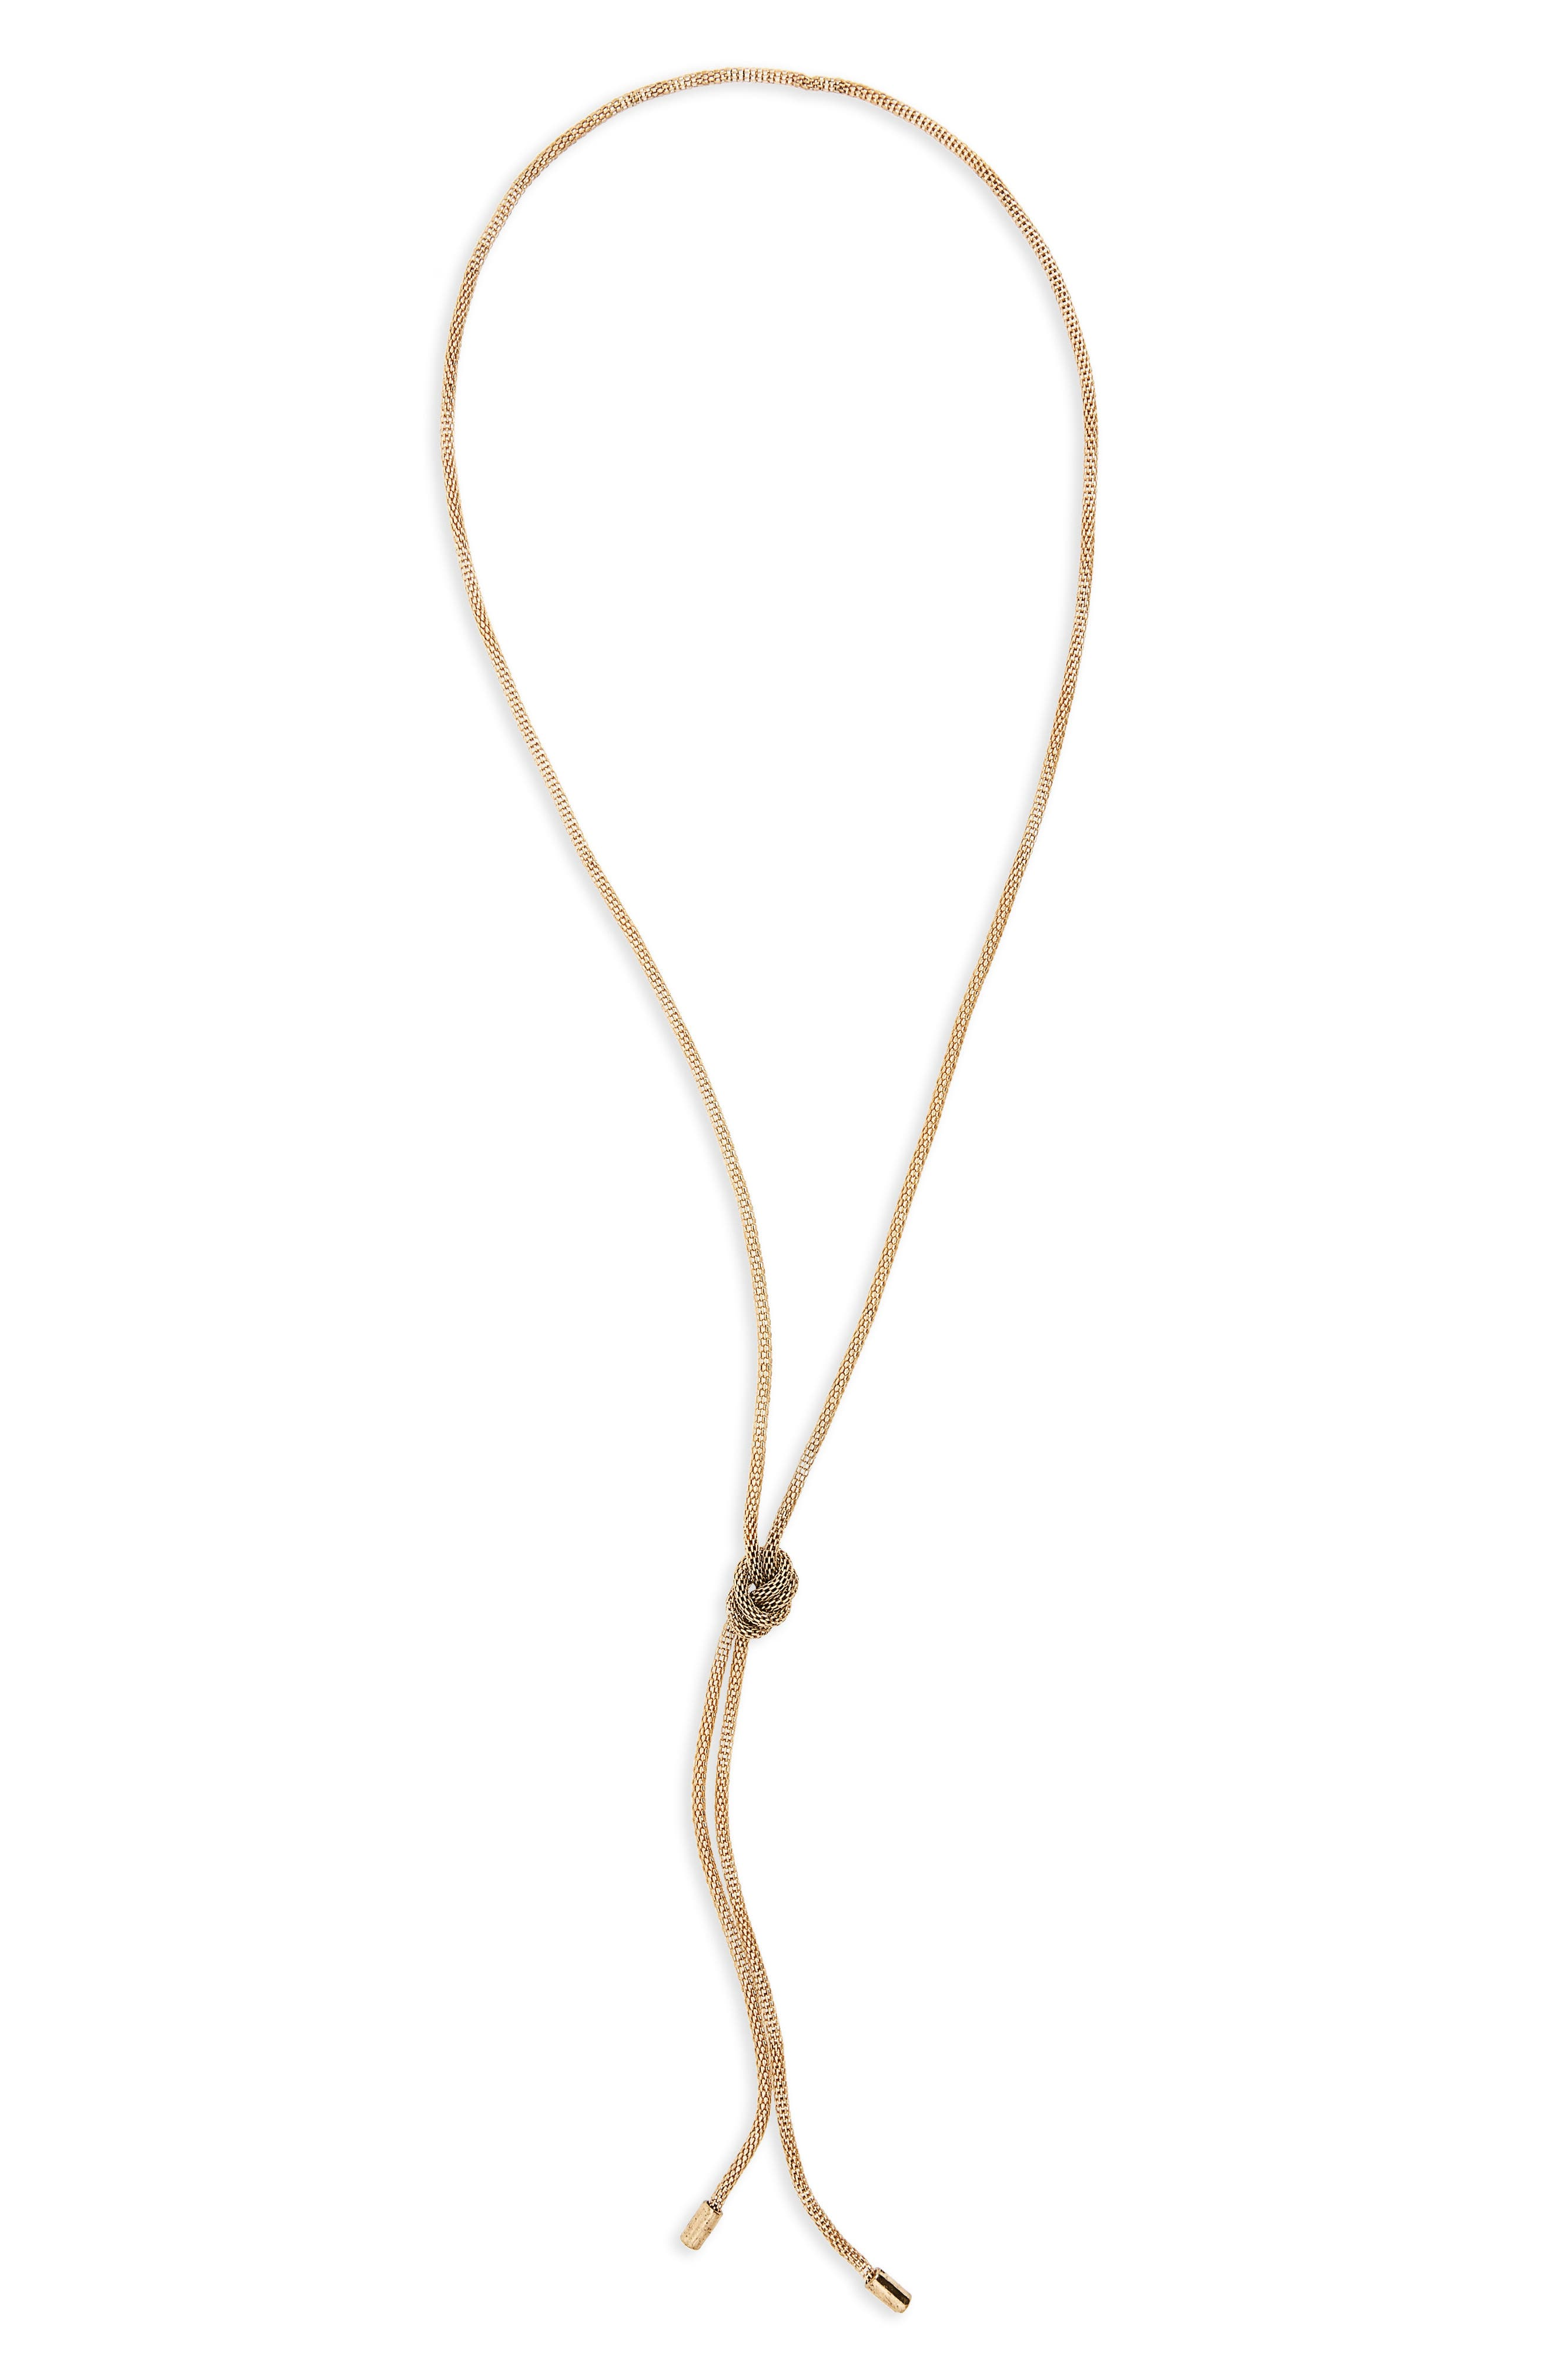 Knotted Rope Chain Necklace,                         Main,                         color, 710